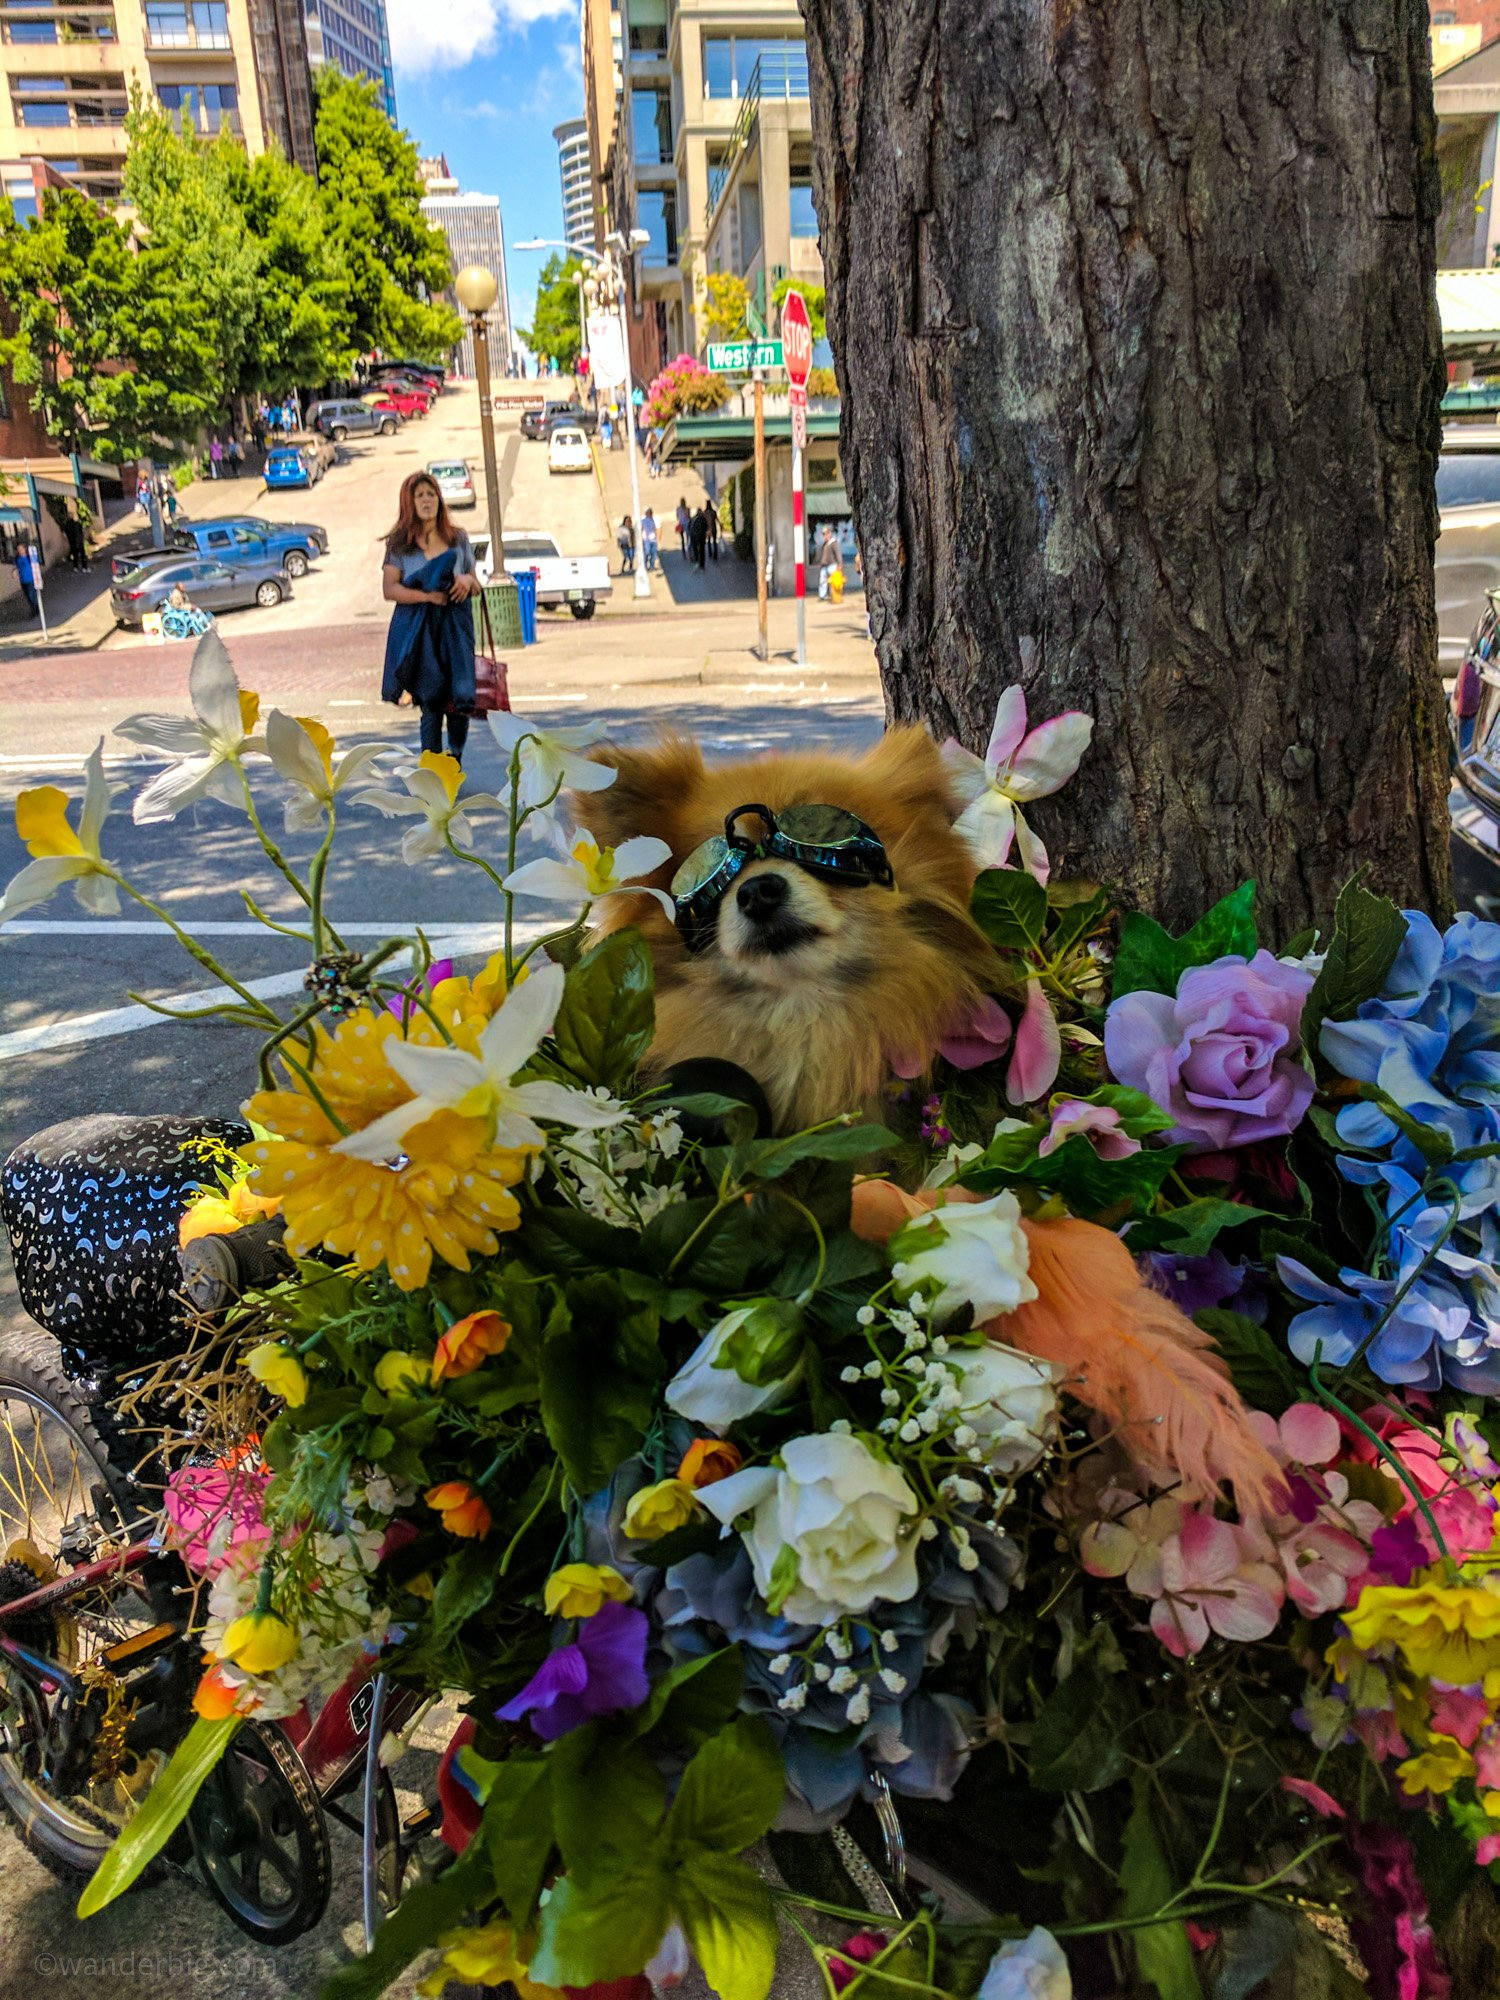 This pomeranian is a local legend in seattle and may have been the inspiration for the mural above.